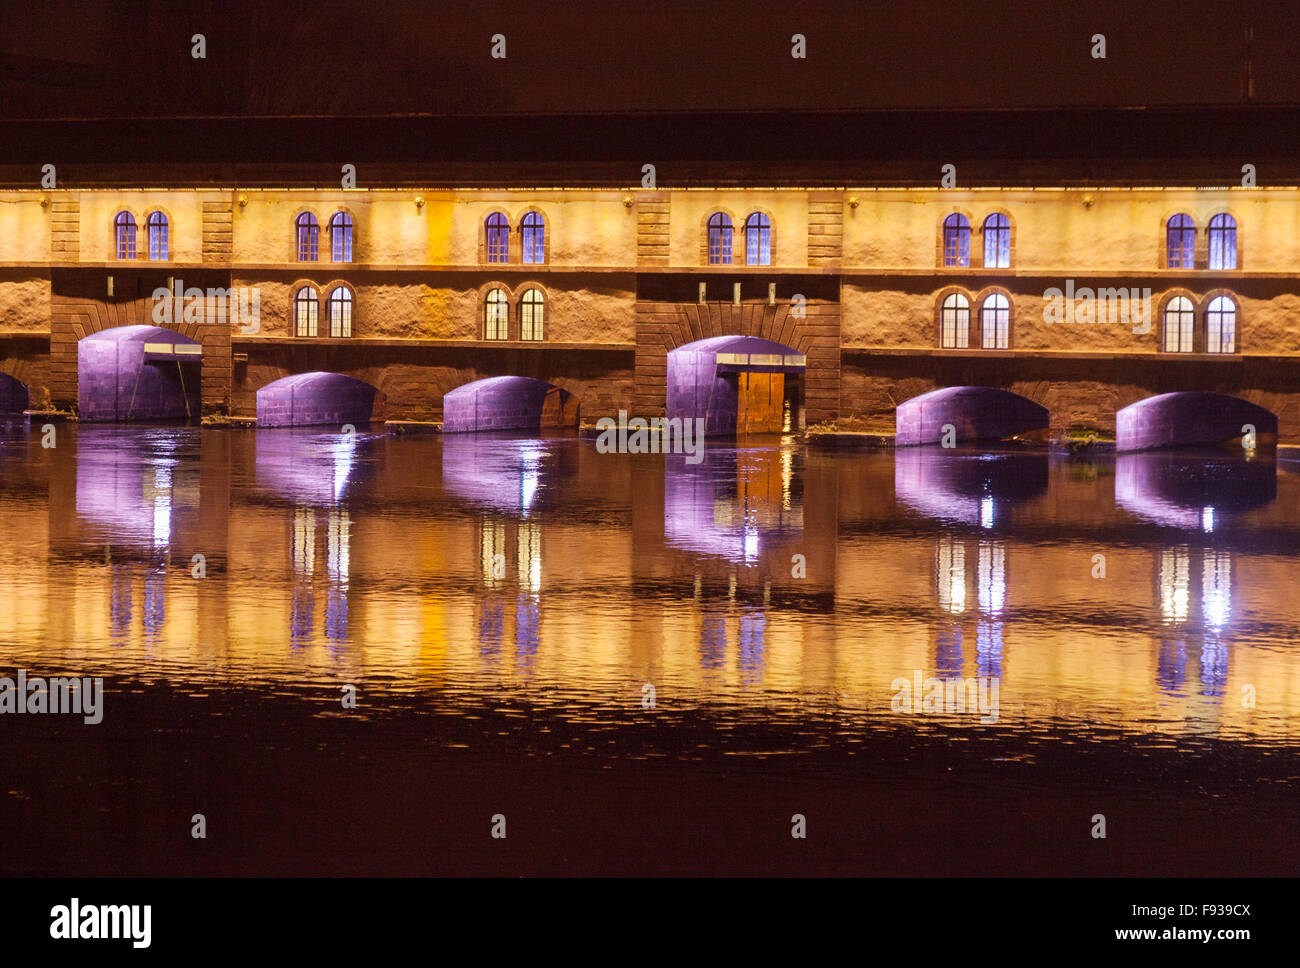 The Barrage Vauban on the River Ill at night, Strasbourg, France Europe - Stock Image